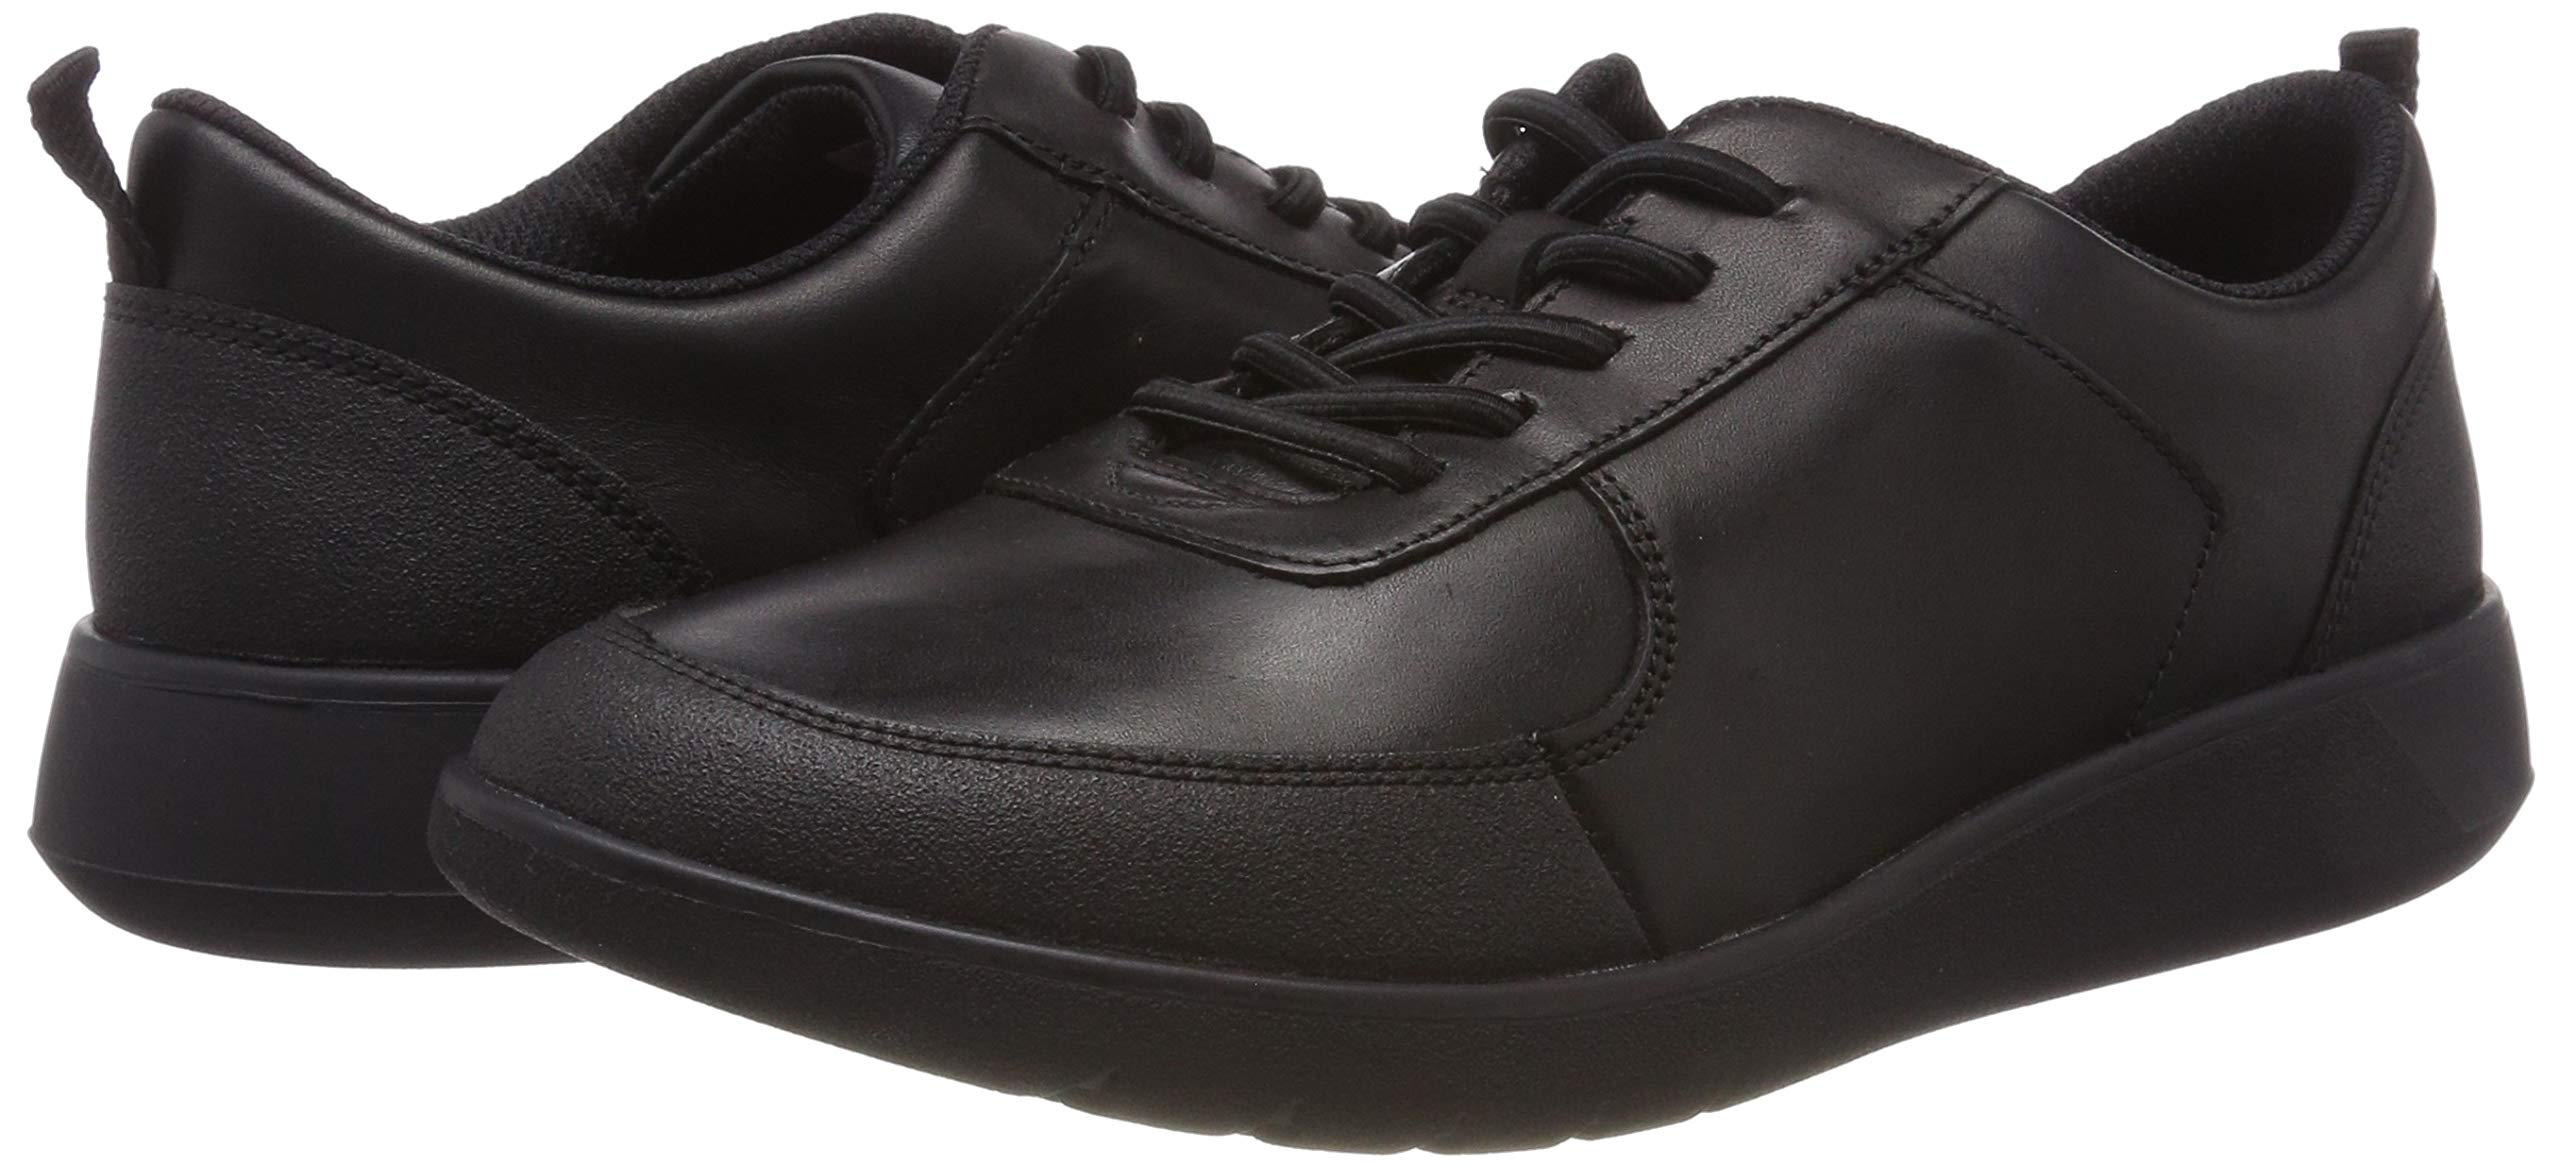 CLARKS Boys' Scape Street Y Brogues, (Black Leather-), 3 UK by CLARKS (Image #5)